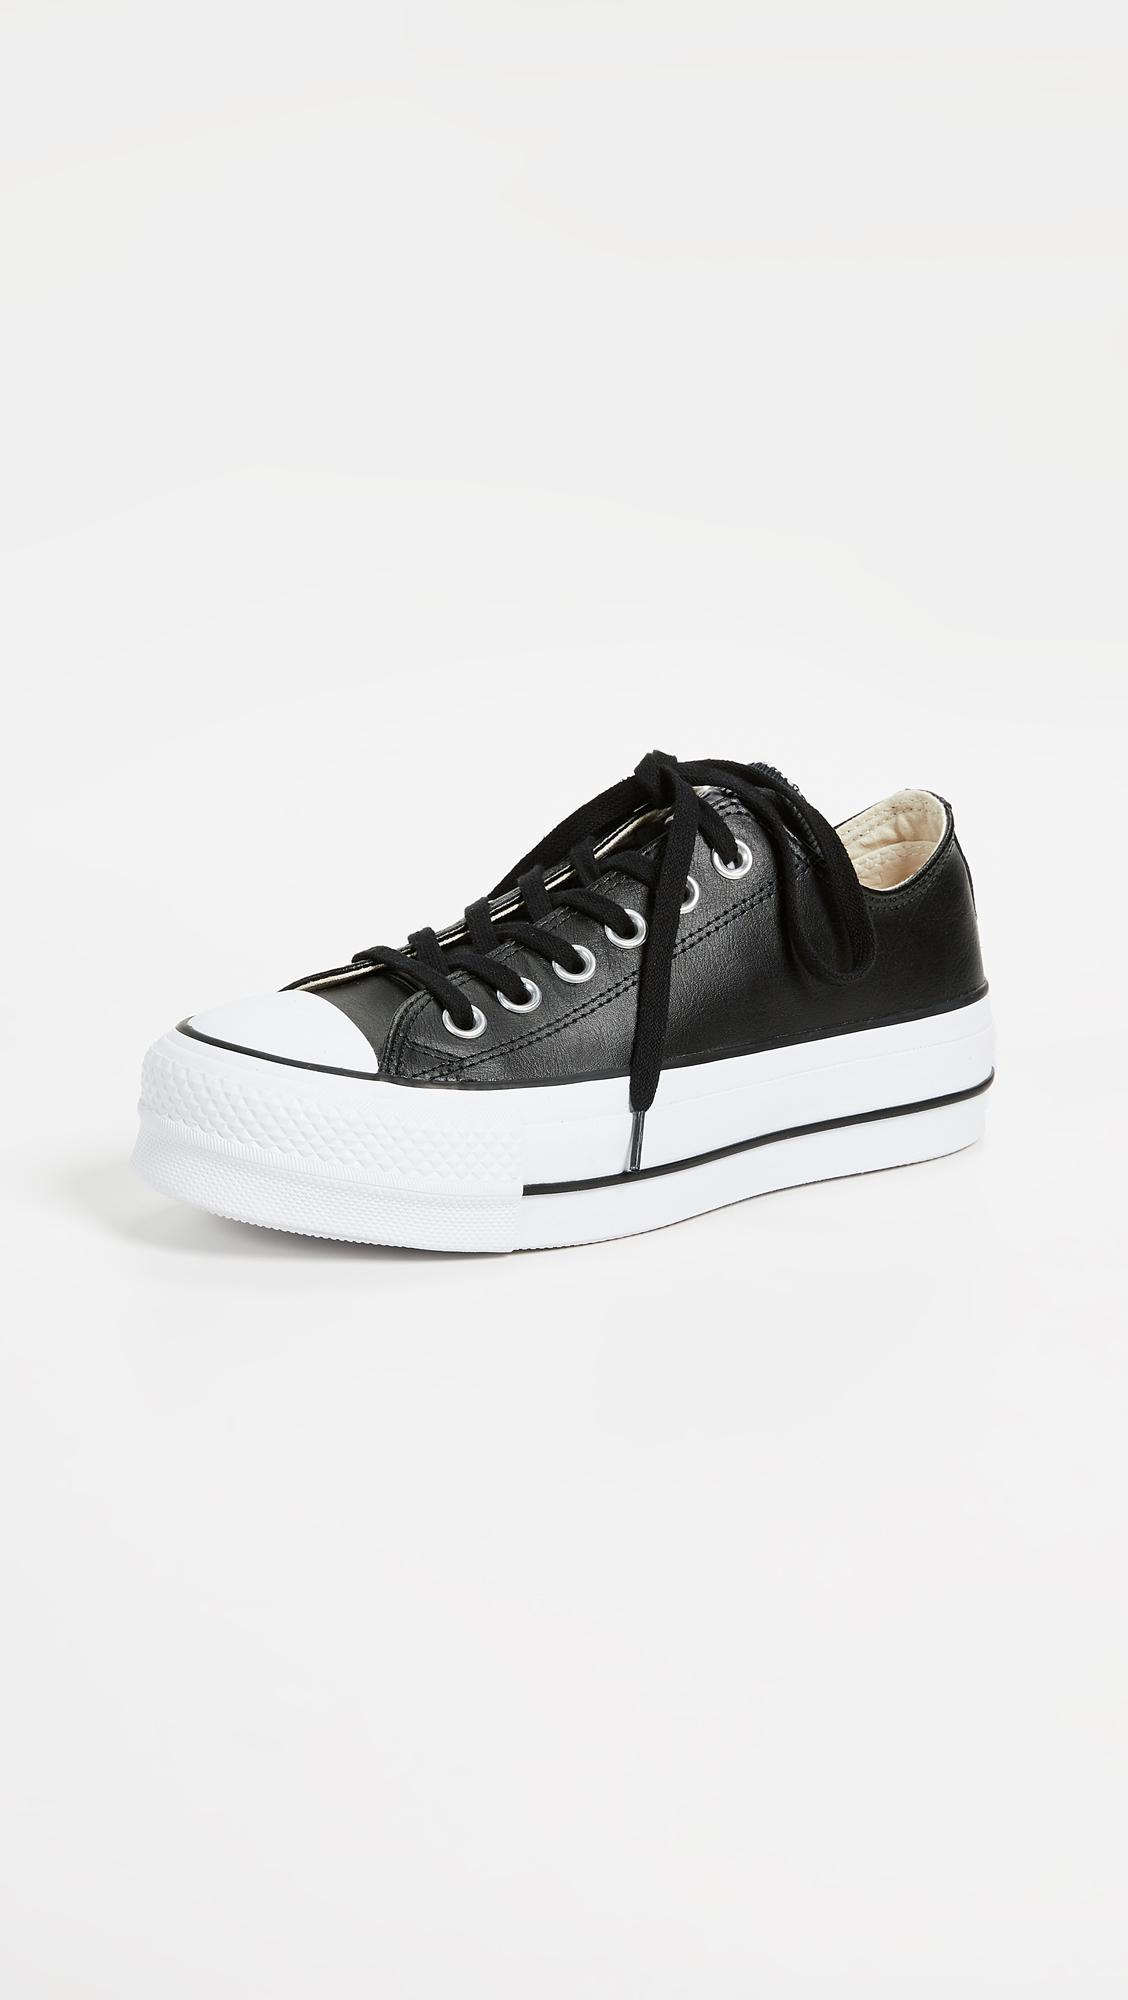 b73cf50efe49ec Converse Chuck All Star Lift Clean Ox Sneakers in Black - Lyst